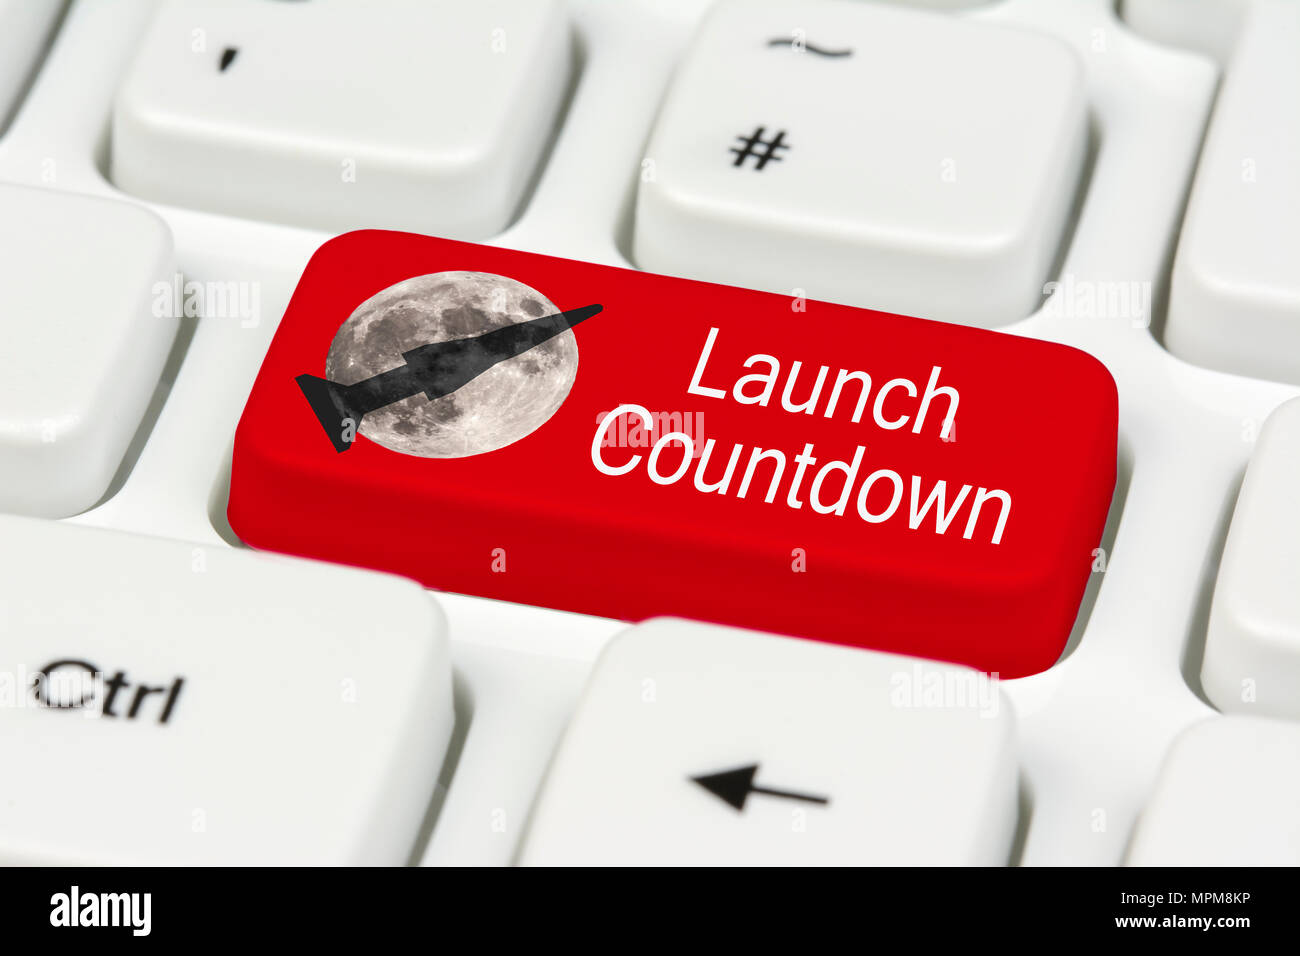 Launch Countdown button with a rocket and moon graphic, on a